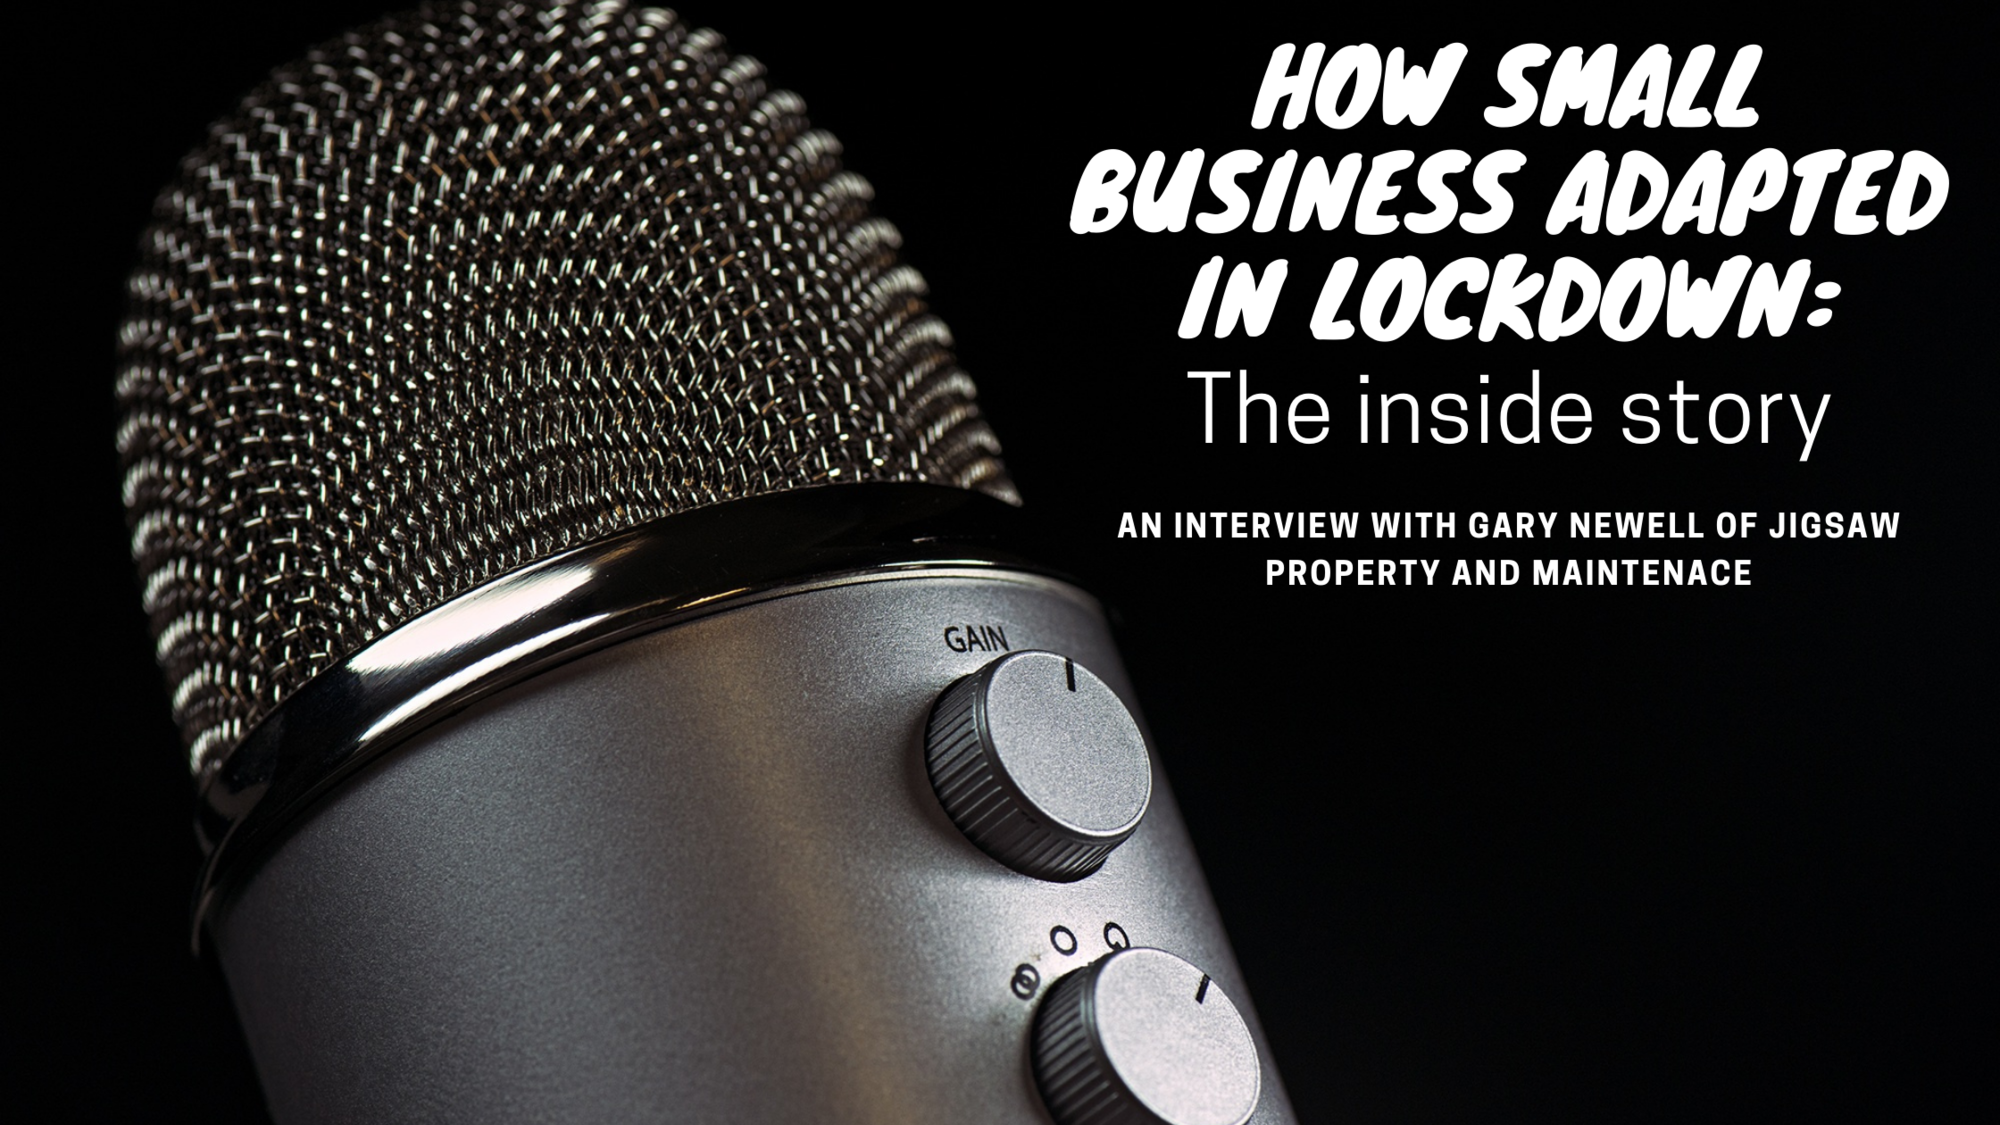 How Small Business Adapted in Lockdown: The inside story